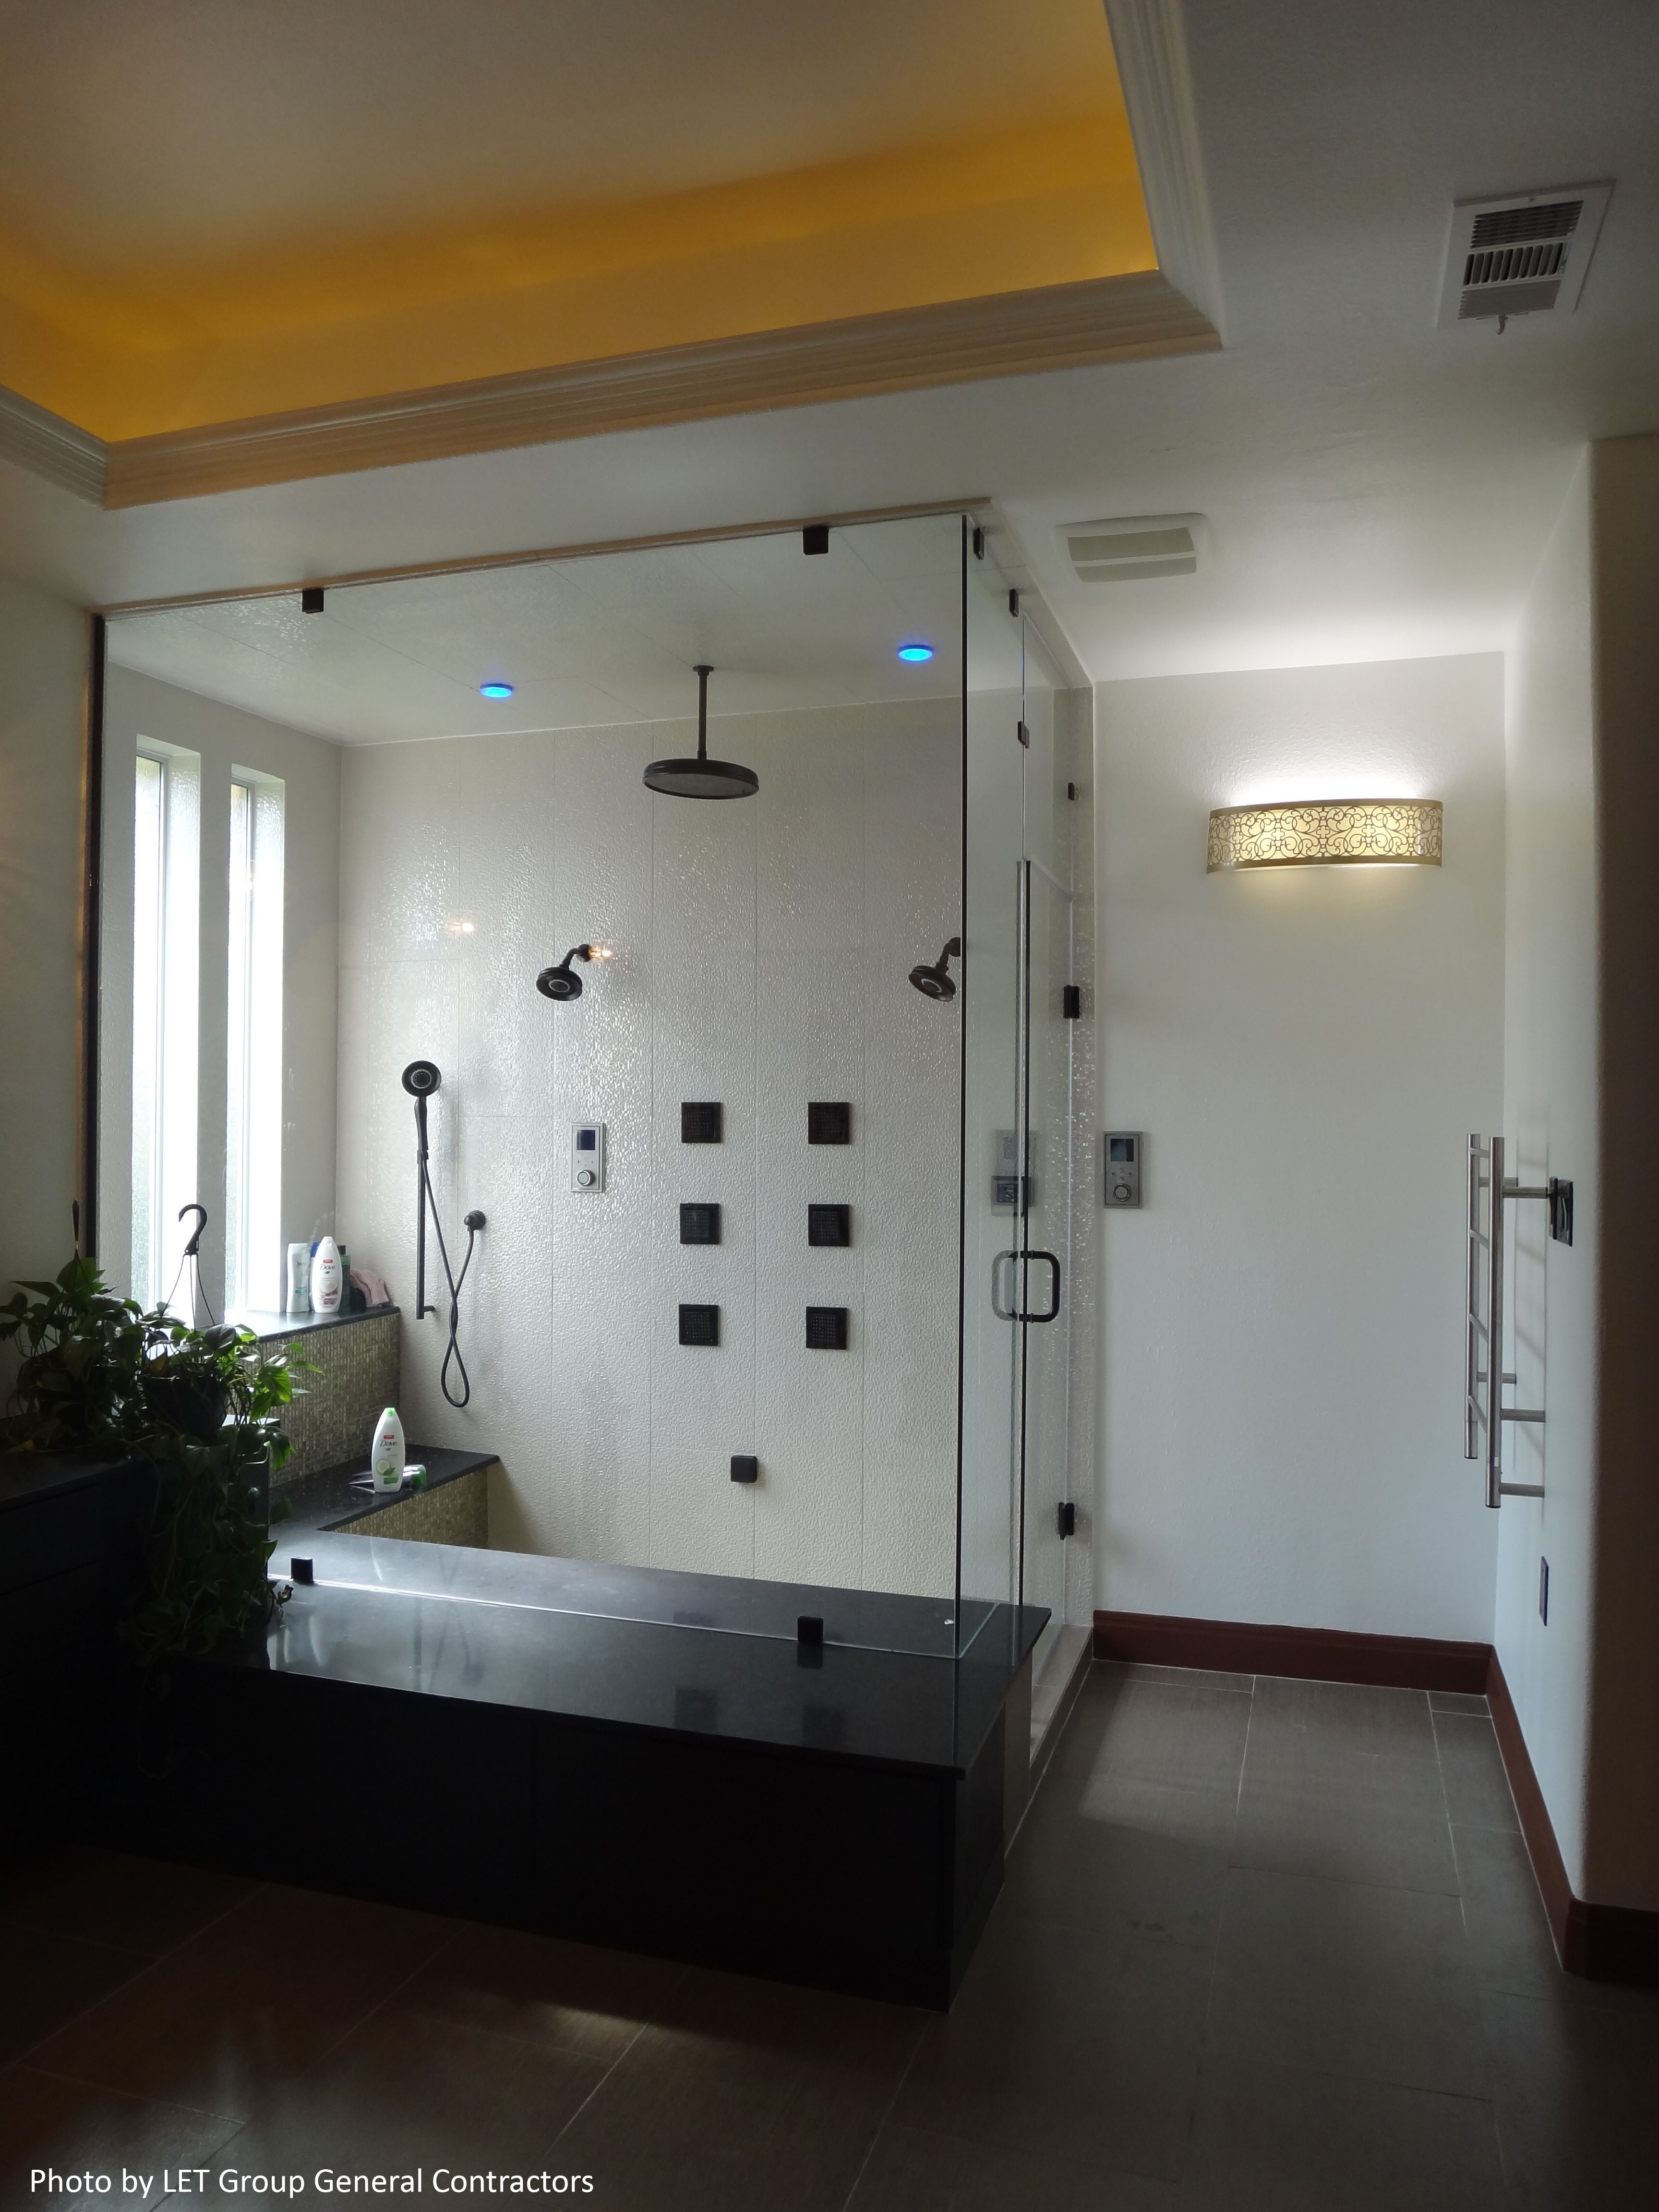 Frameless Shower Door With Glass Shower Wall And Walk In Shower With Rain Shower Head Large